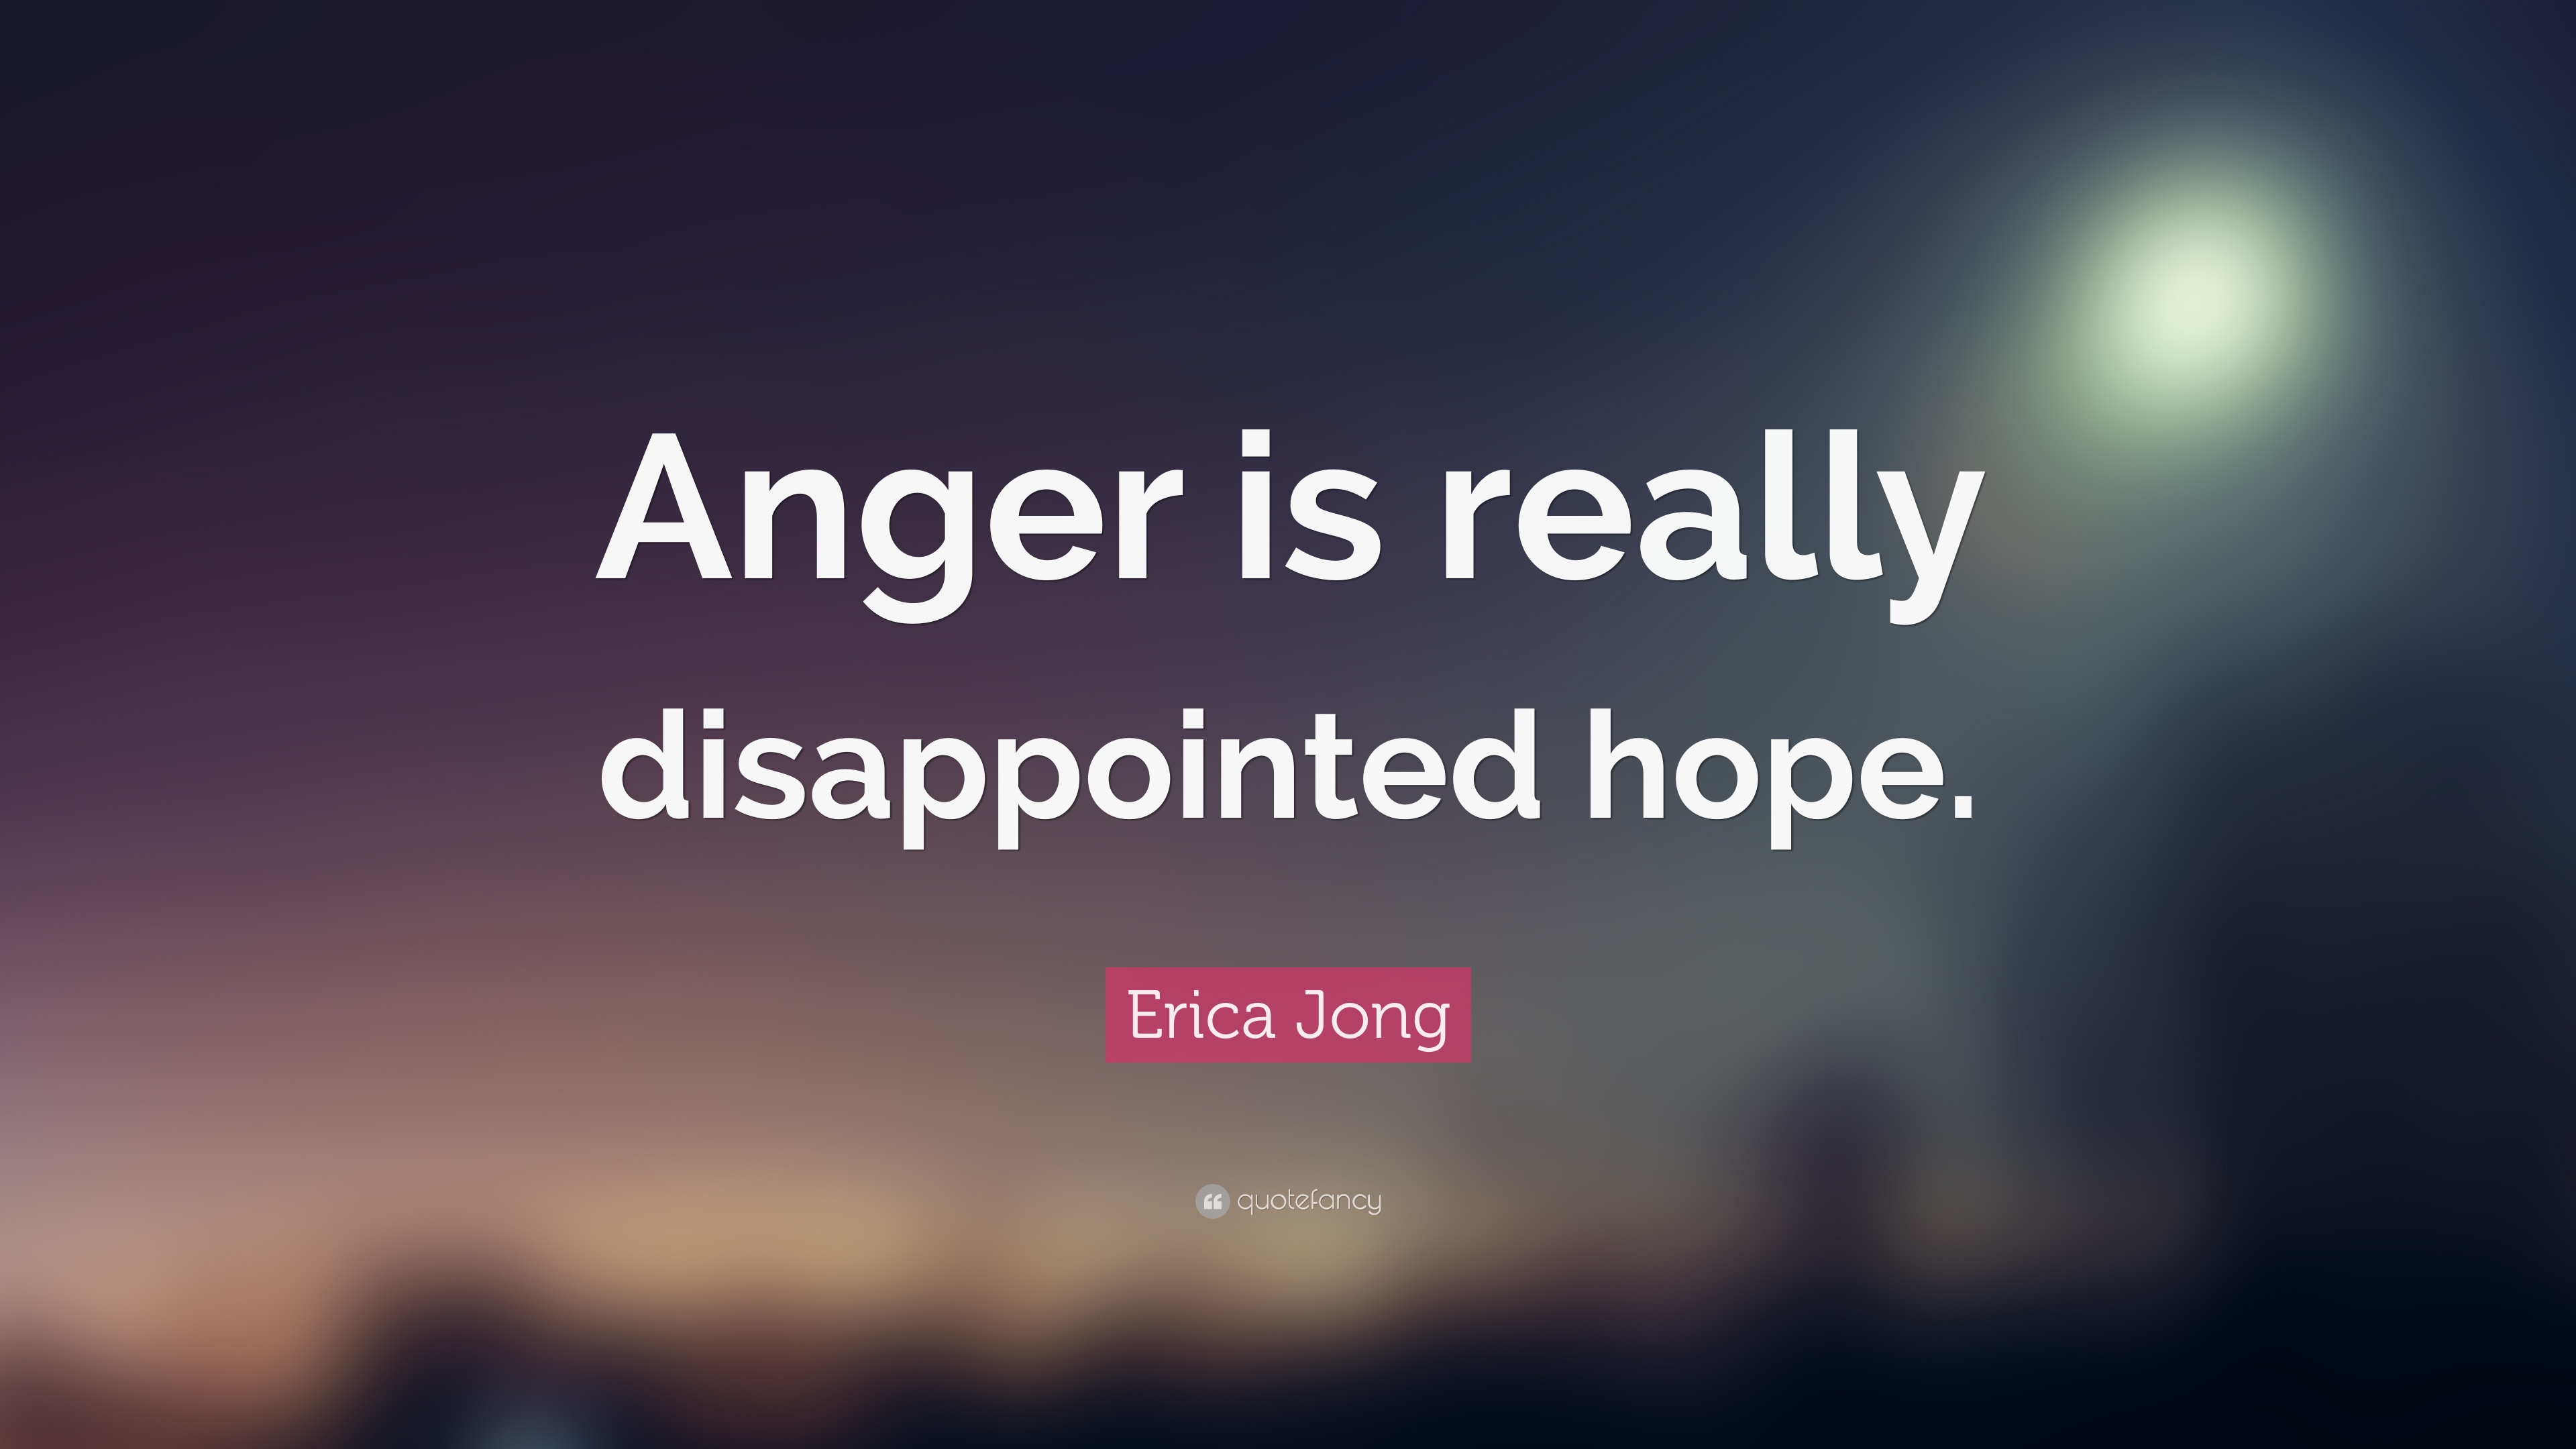 Anger Quotes Anger Quotes 40 Wallpapers  Quotefancy